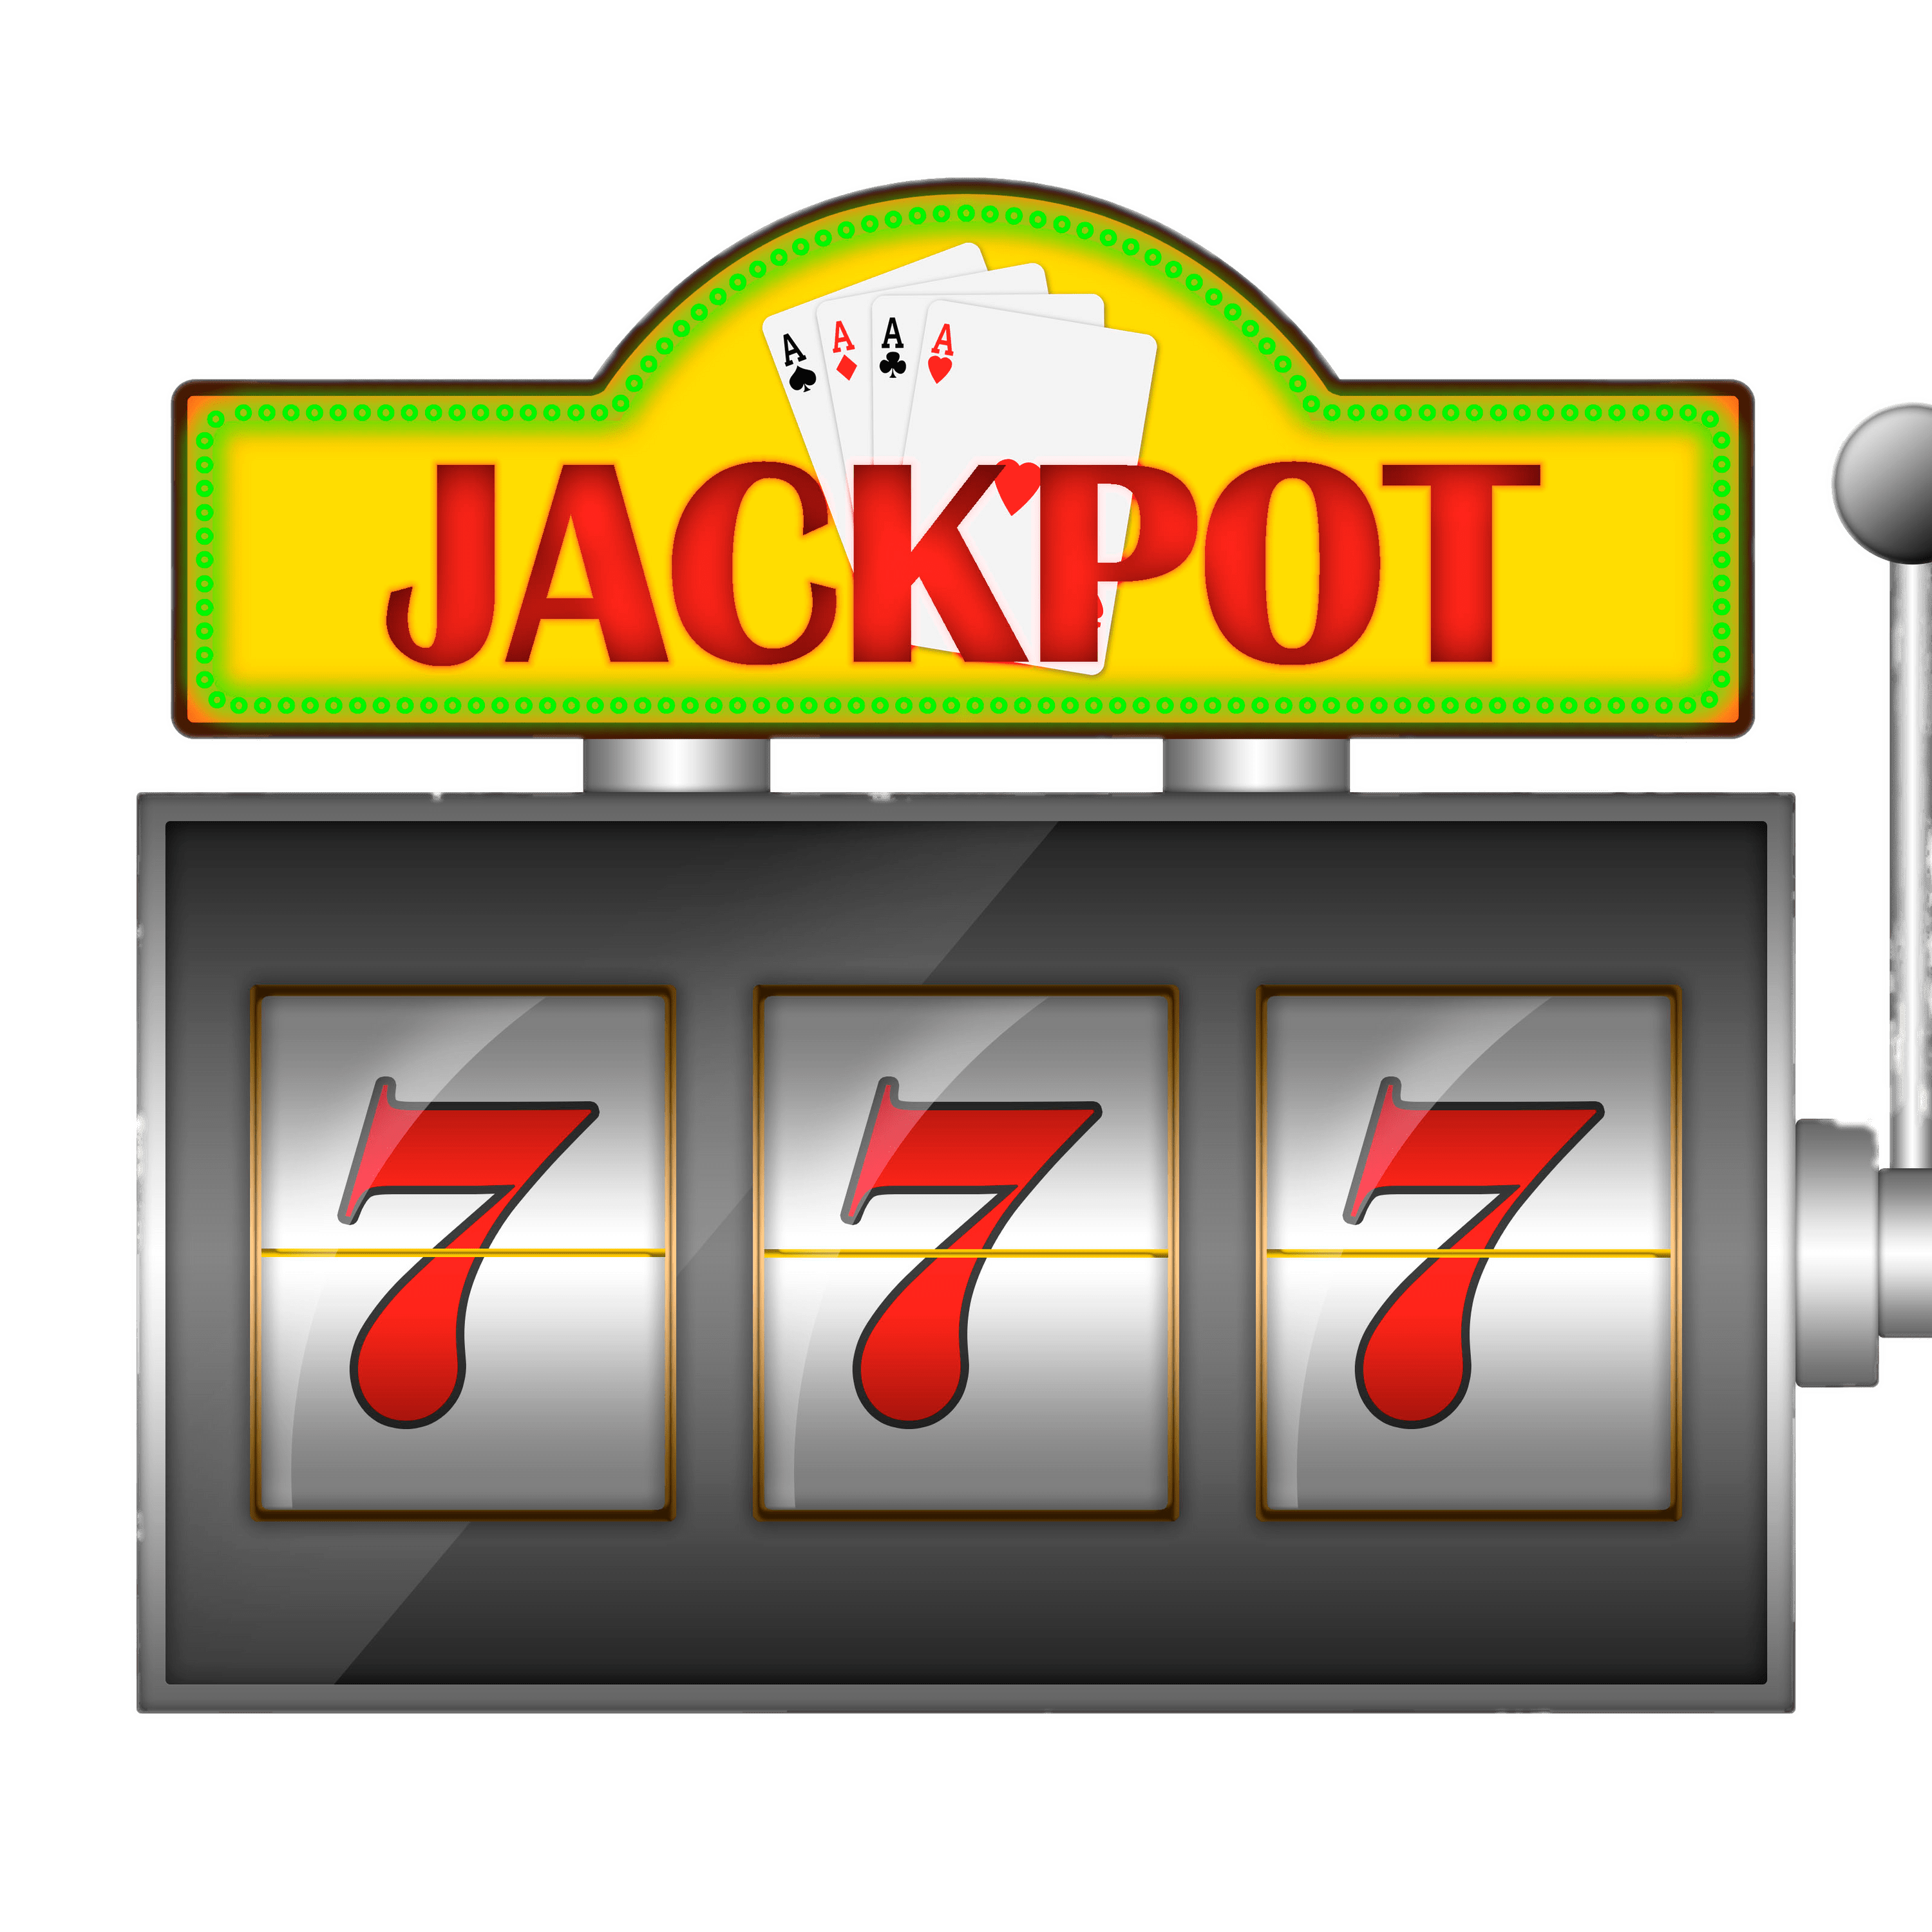 Jackpot drawing machine. Slot graphic free